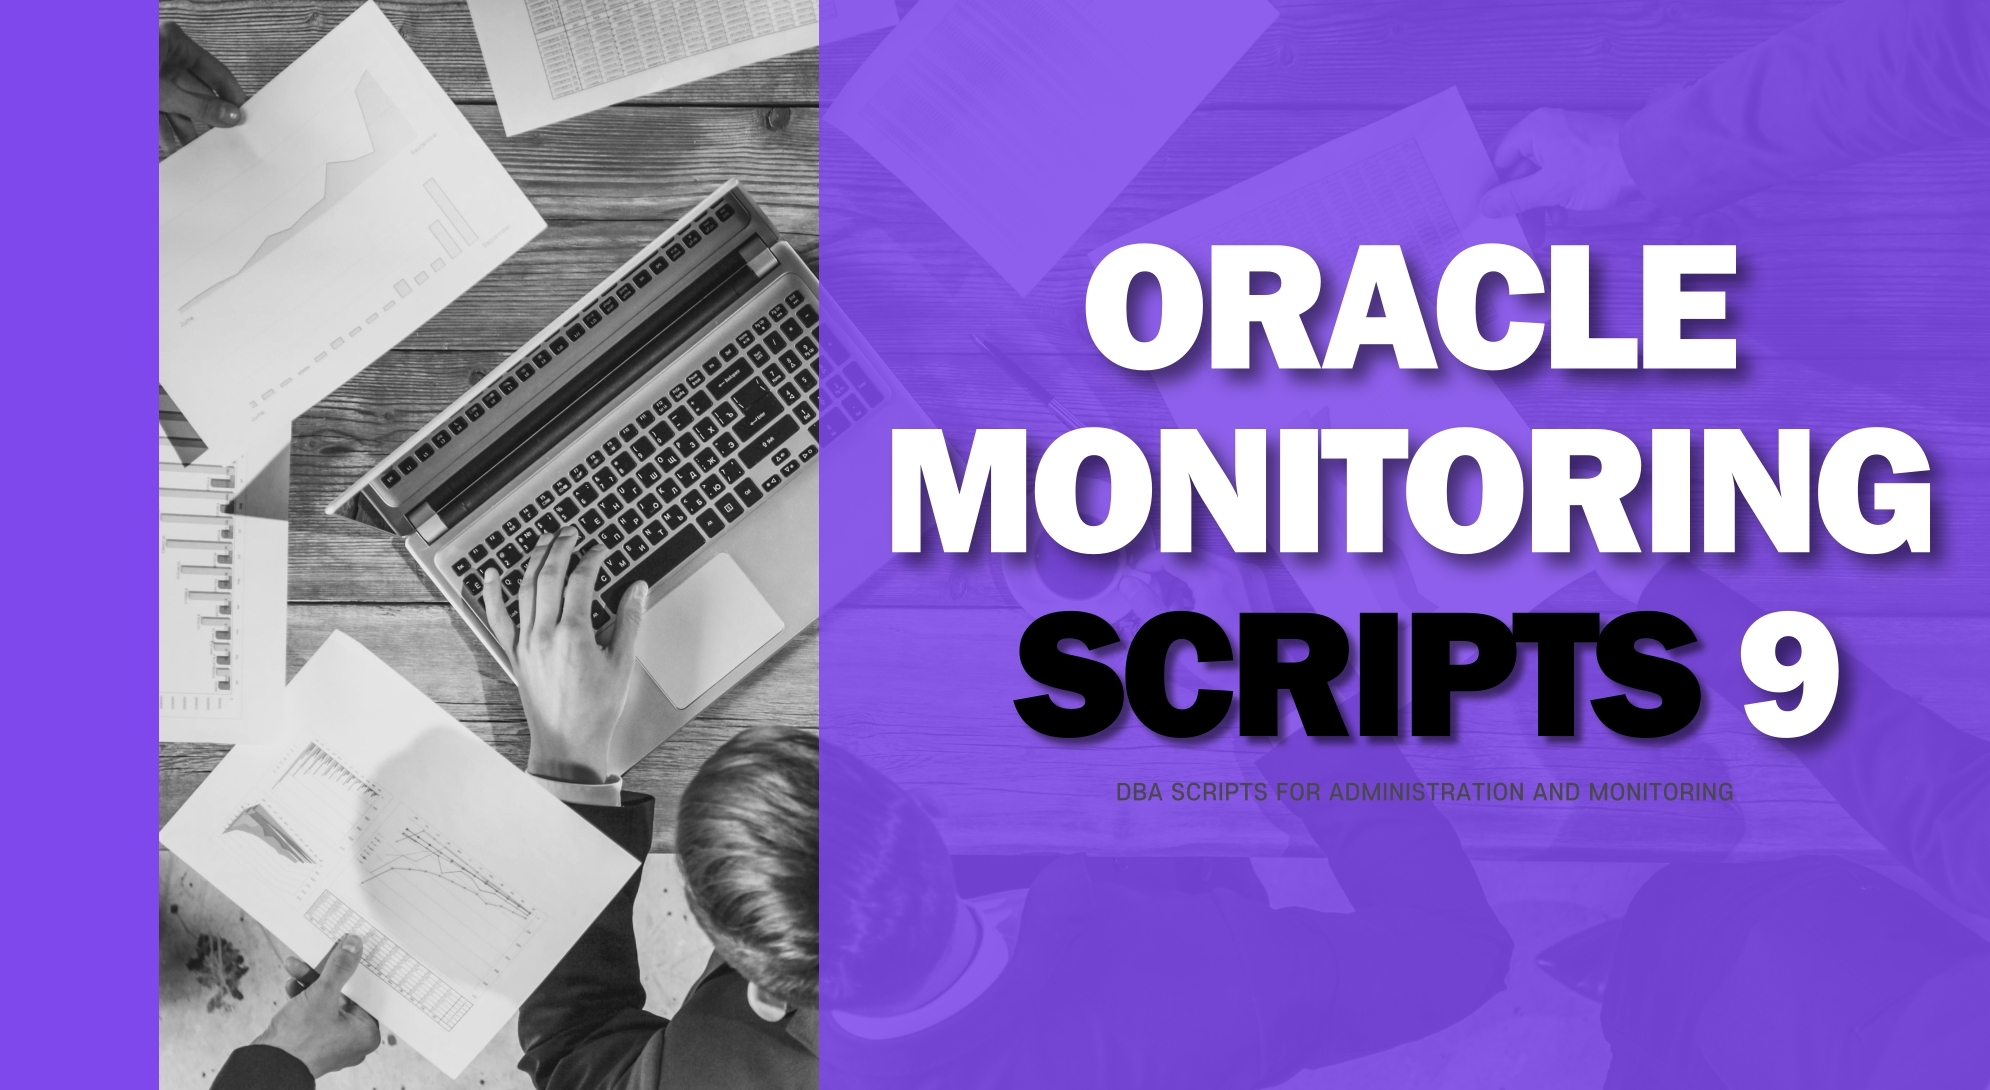 Oracle Monitoring Scripts 9